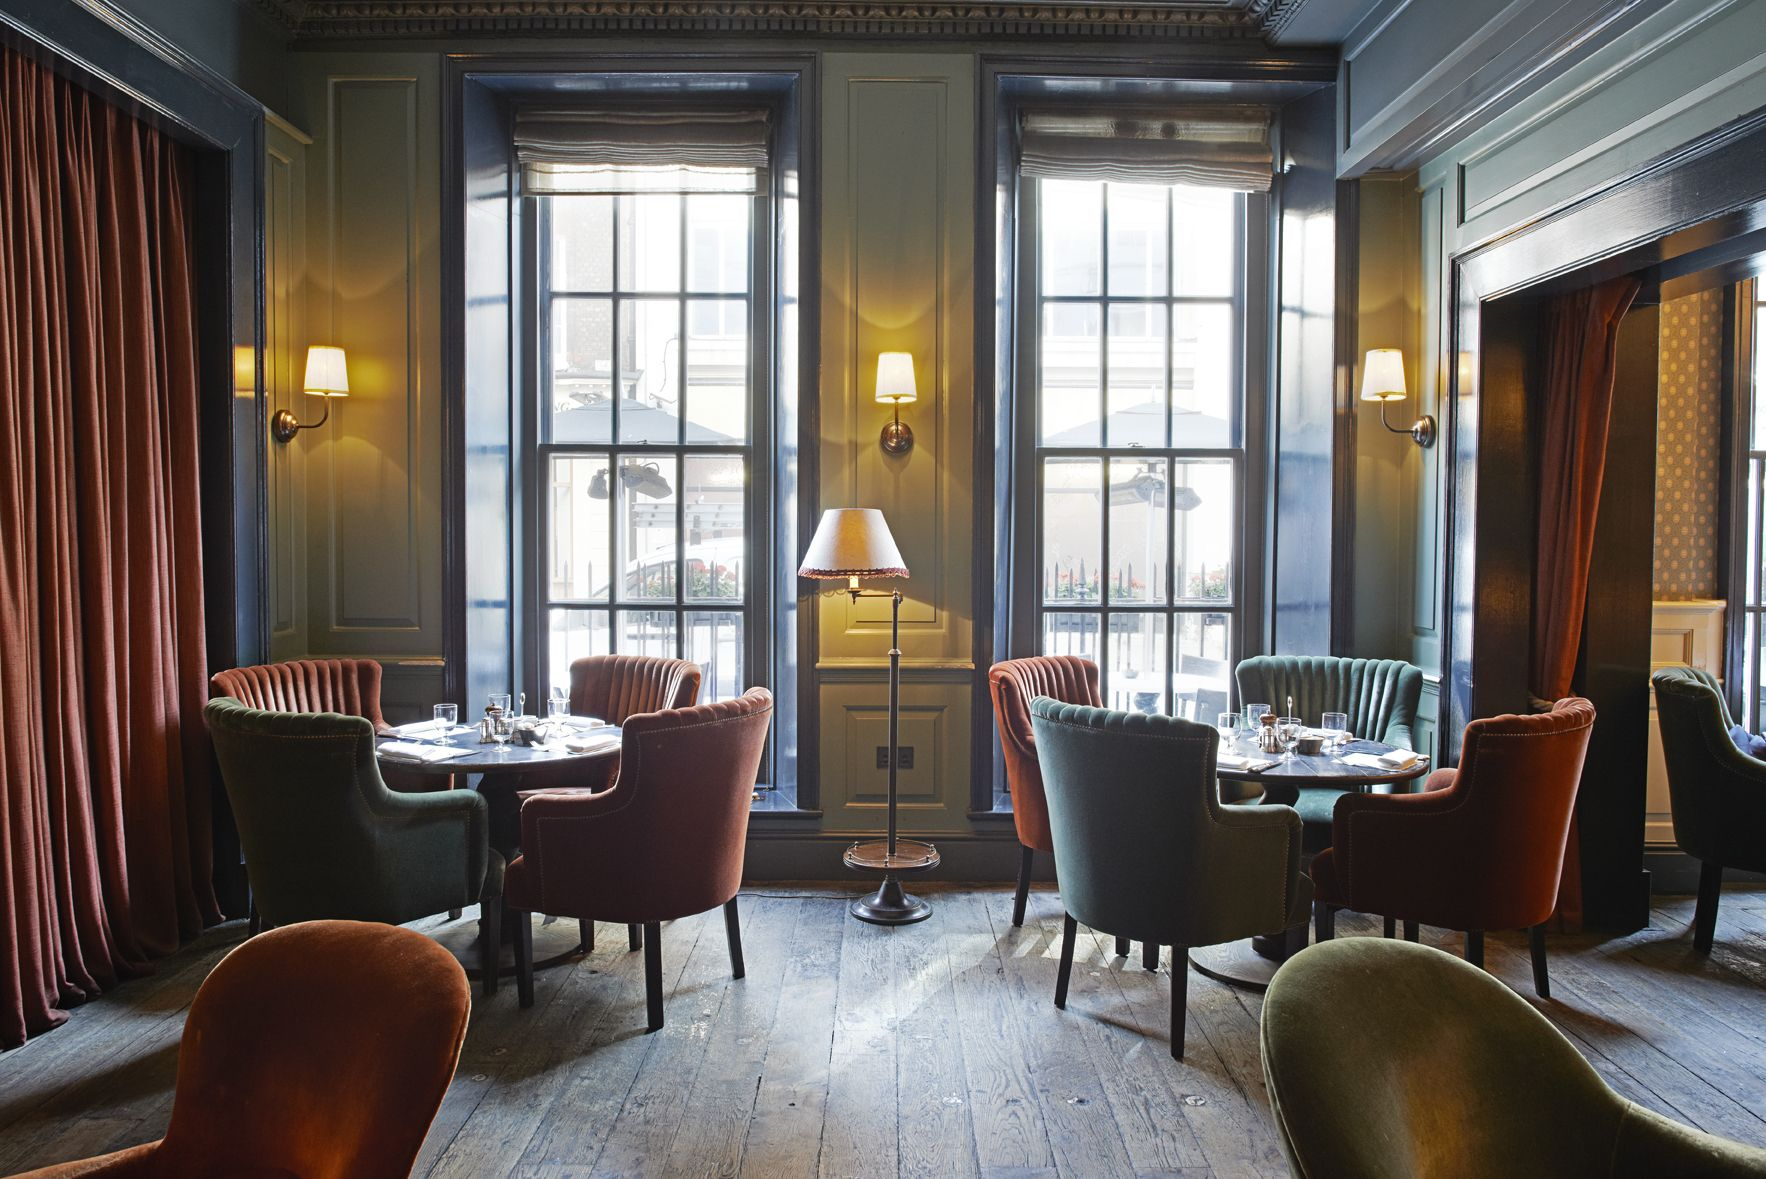 Situated In Londons Soho Dean Street Townhouse Serves British Inspired Menus Served All Day An Informal Setting See Website For Food And Drinks